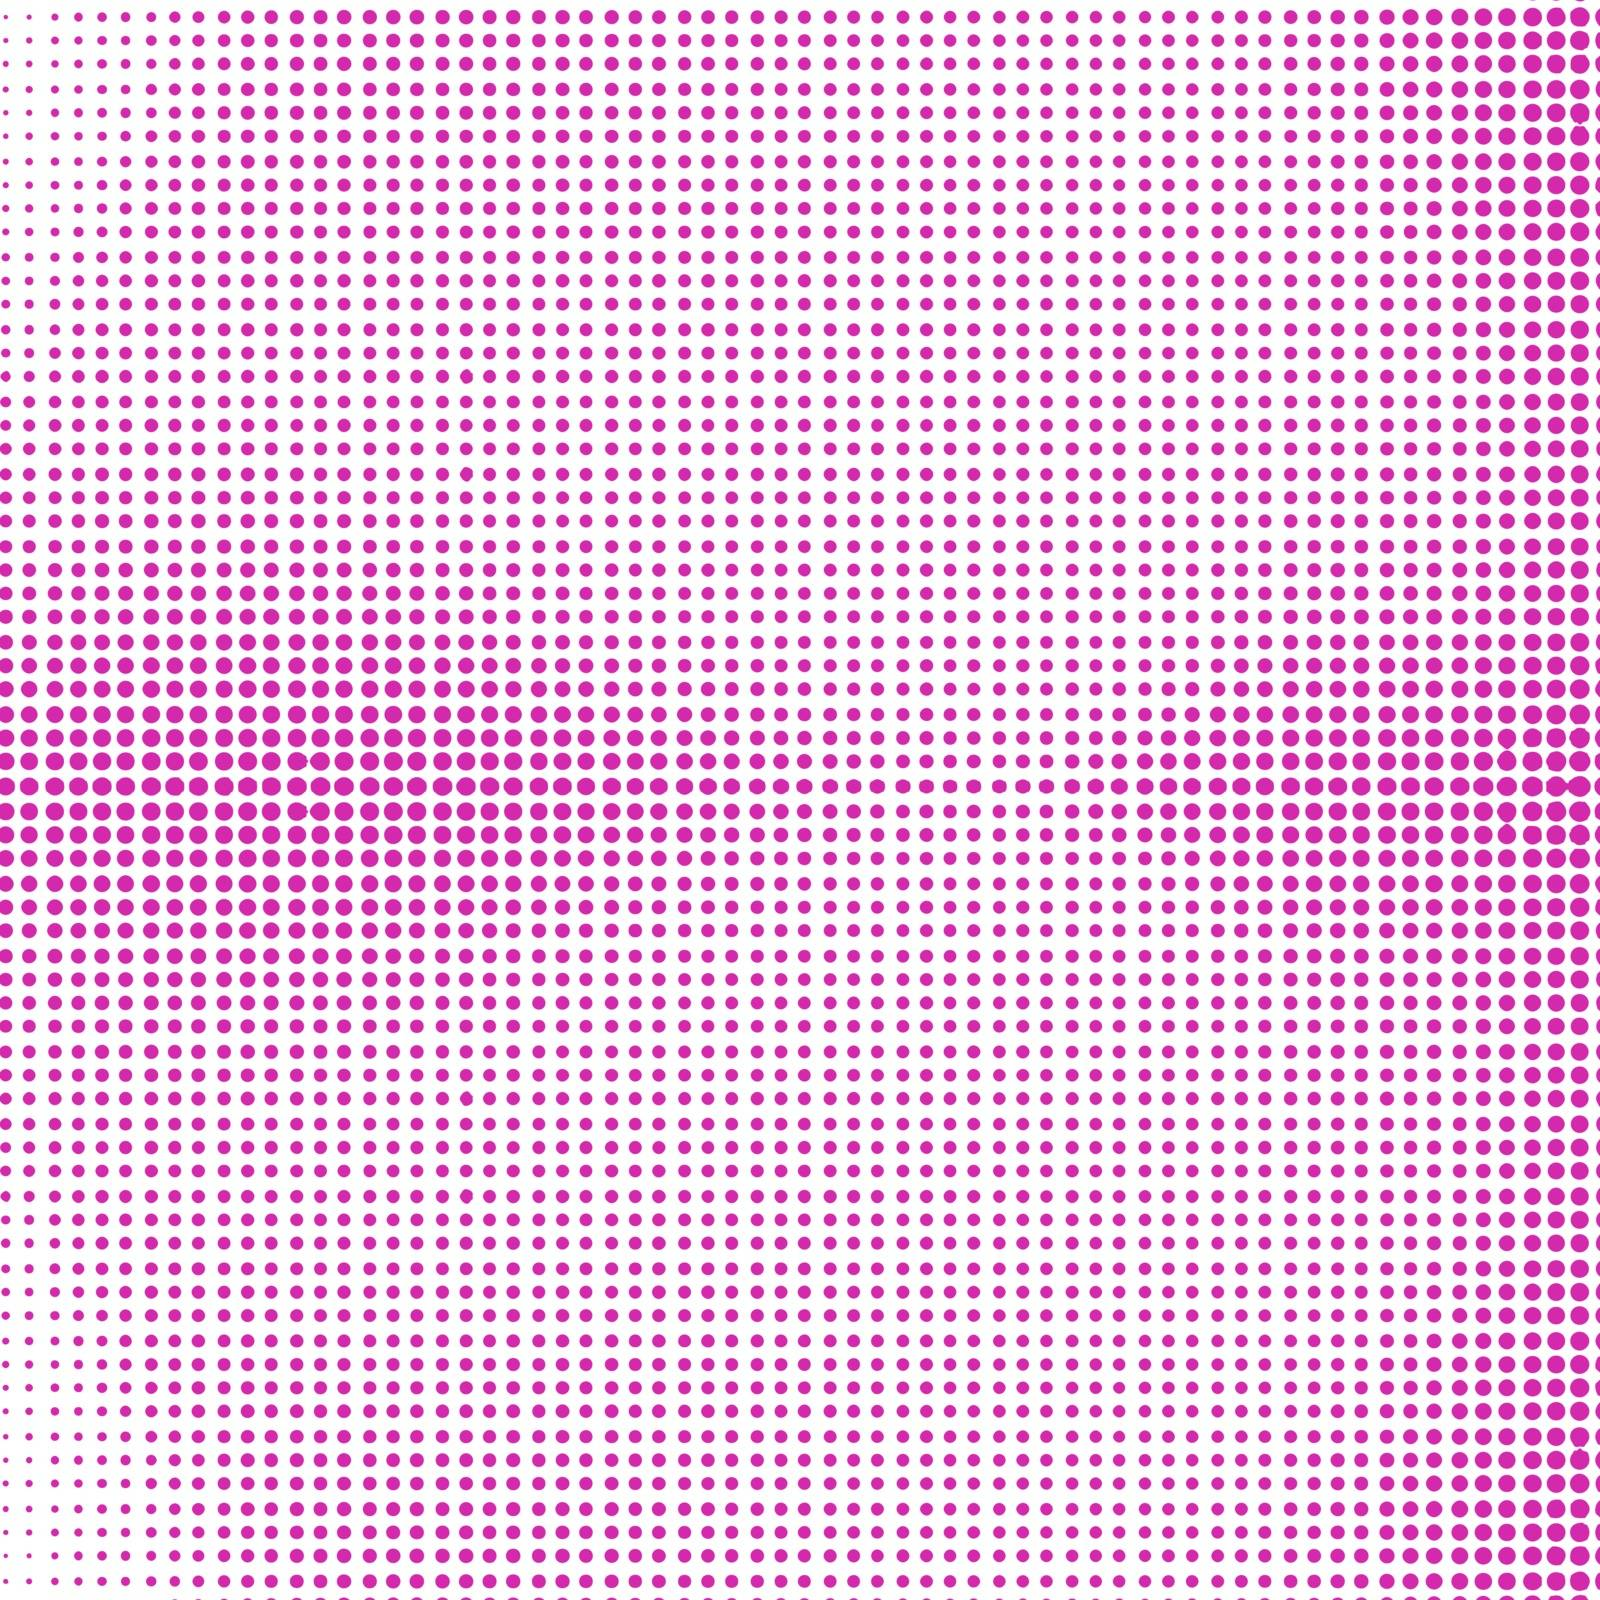 Pink Halftone Background. Pink  Dotted Halftone Pattern